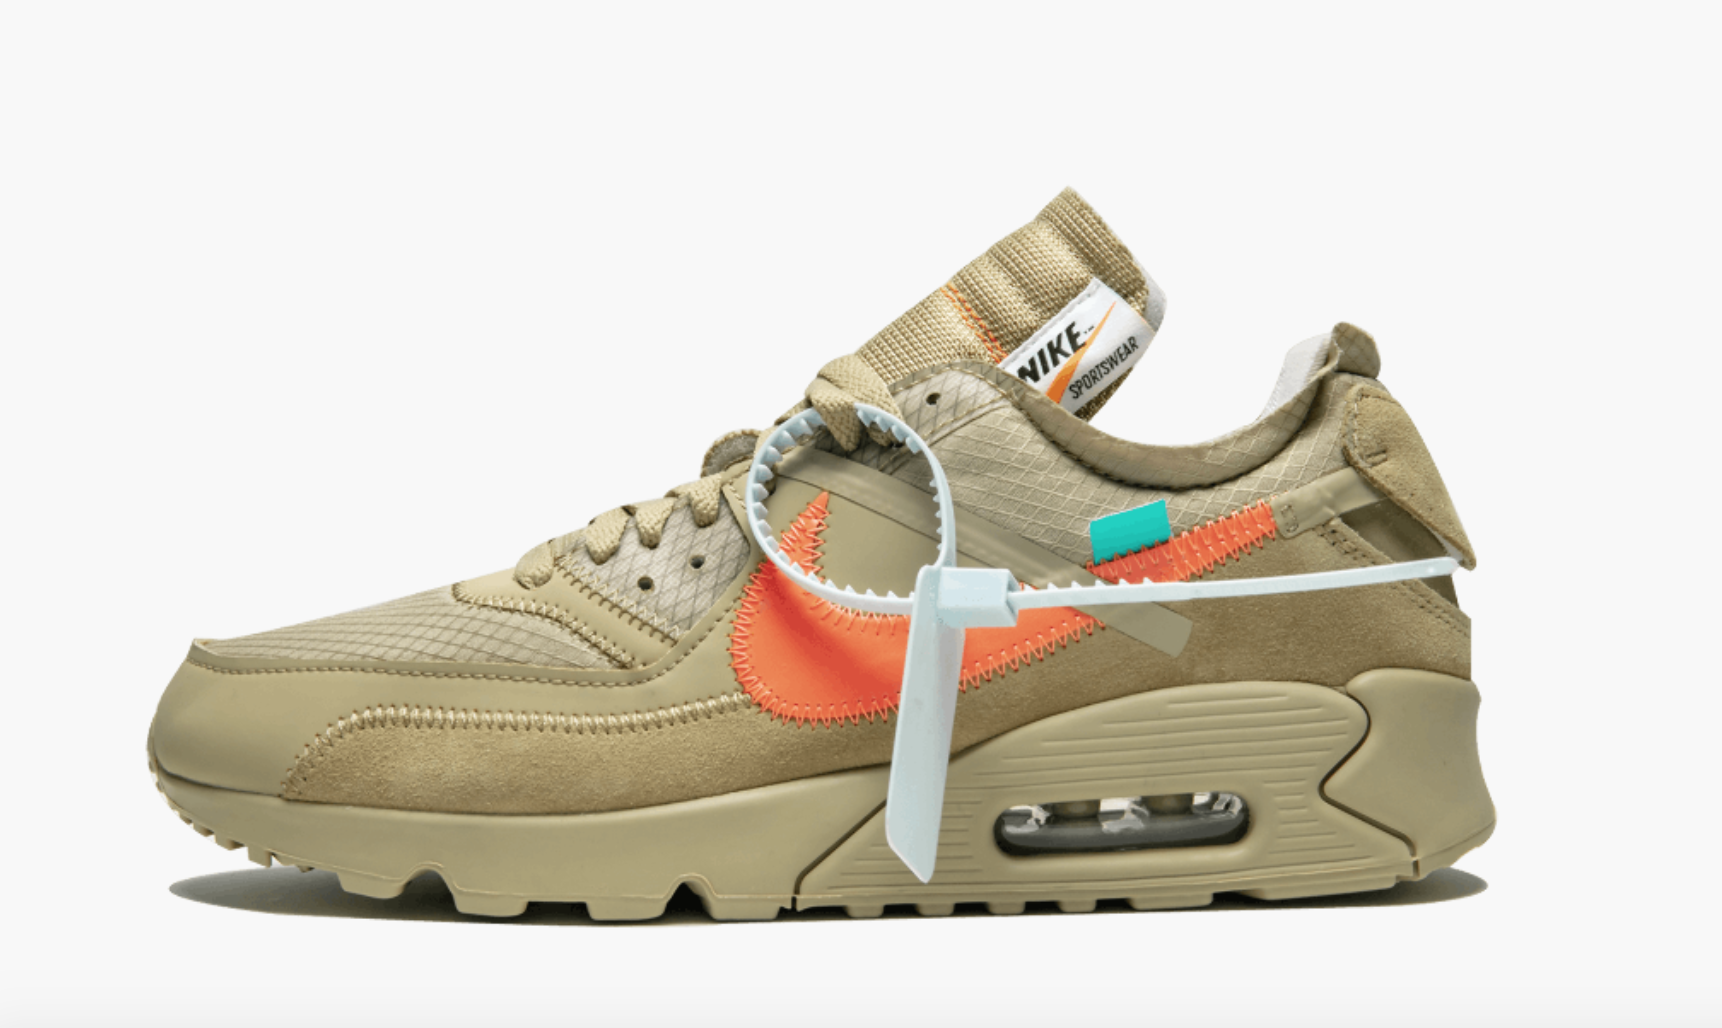 sale retailer f0143 81ae1 Best Nike Air Max Shoes 2019   Air Max Releases and Deals